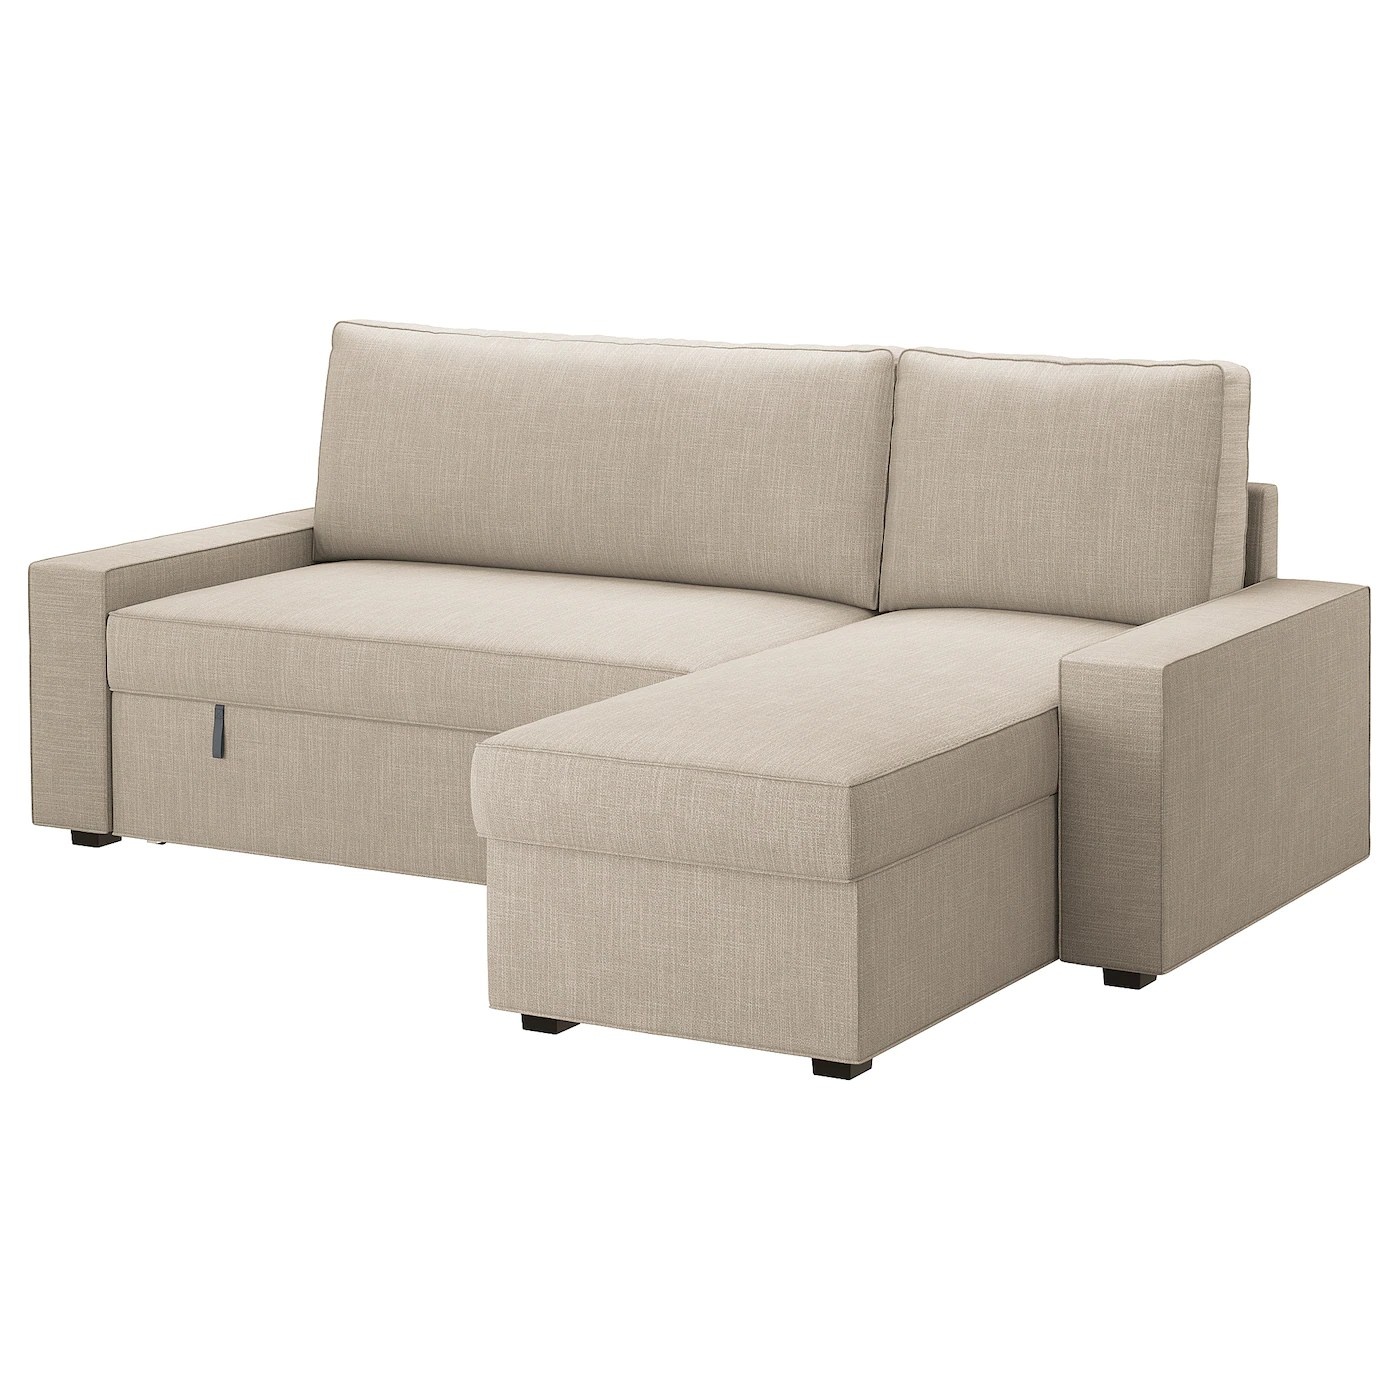 vilasund cover sofa bed with chaise longue aurelle home charcoal grey sectional hillared beige